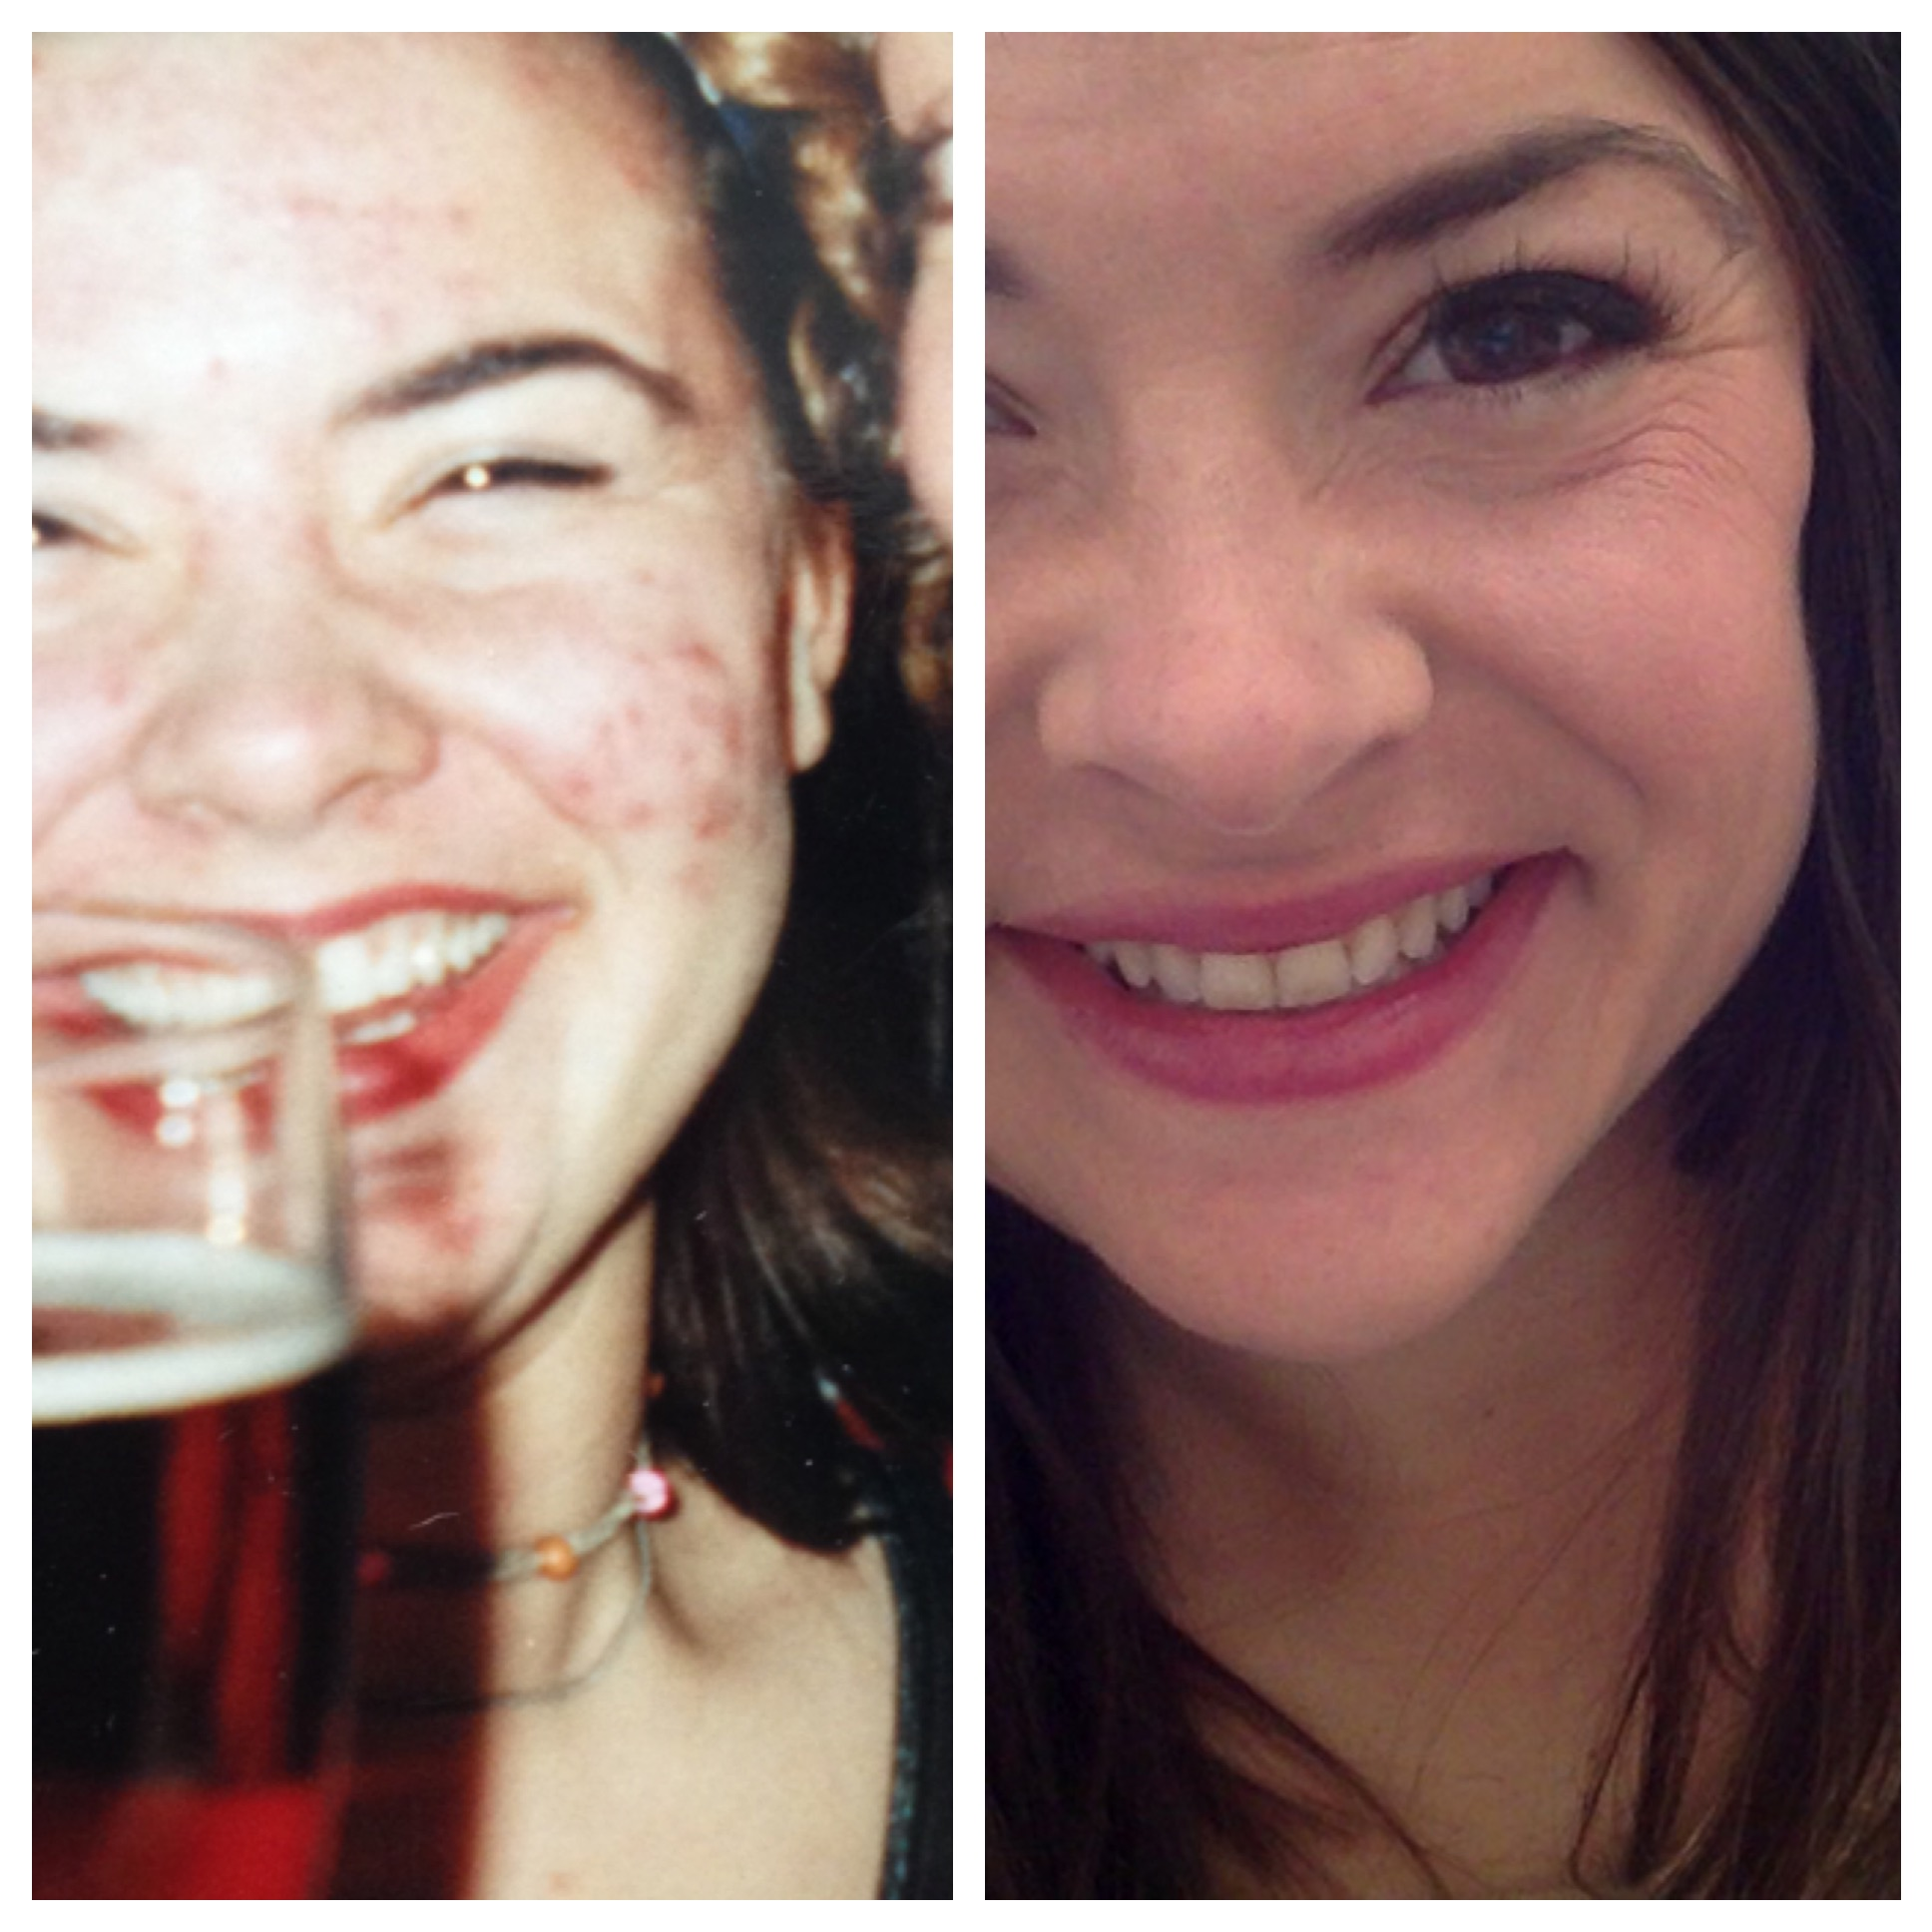 On the left is my 20th birthday, on the right is now (I am 35 but you can just call me 29).